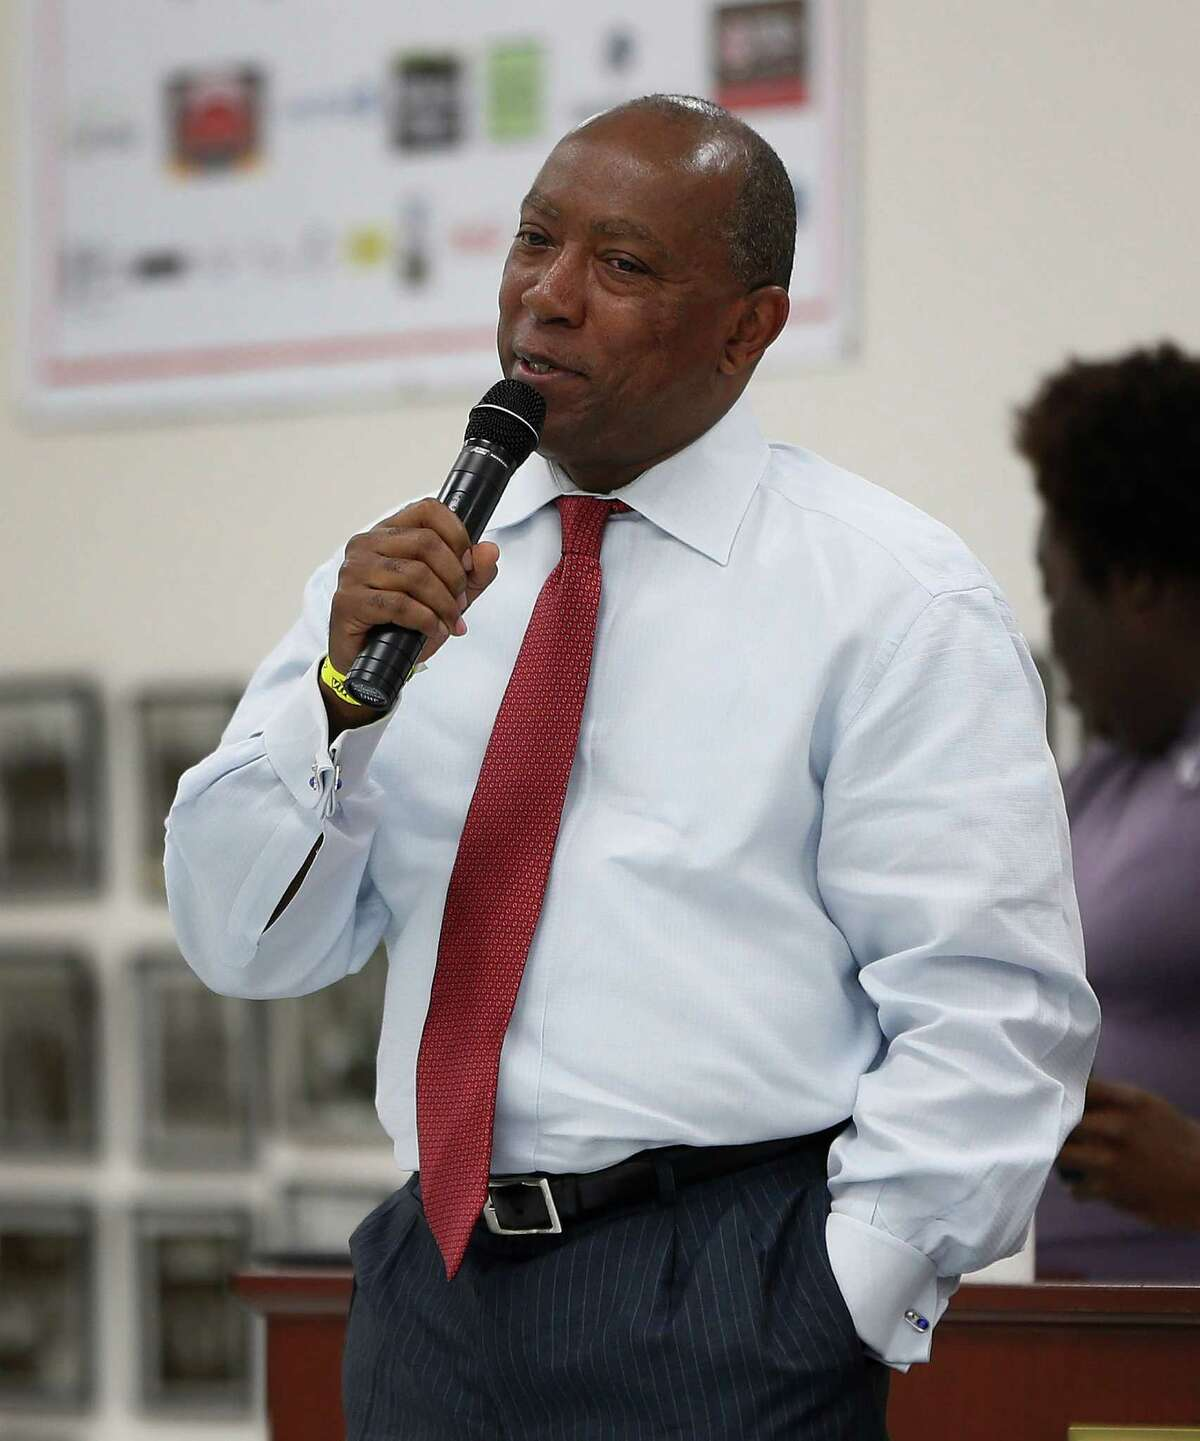 Sylvester Turner is expected to cruise into a runoff in the election for Houston's next mayor, but what happens after that is less certain.